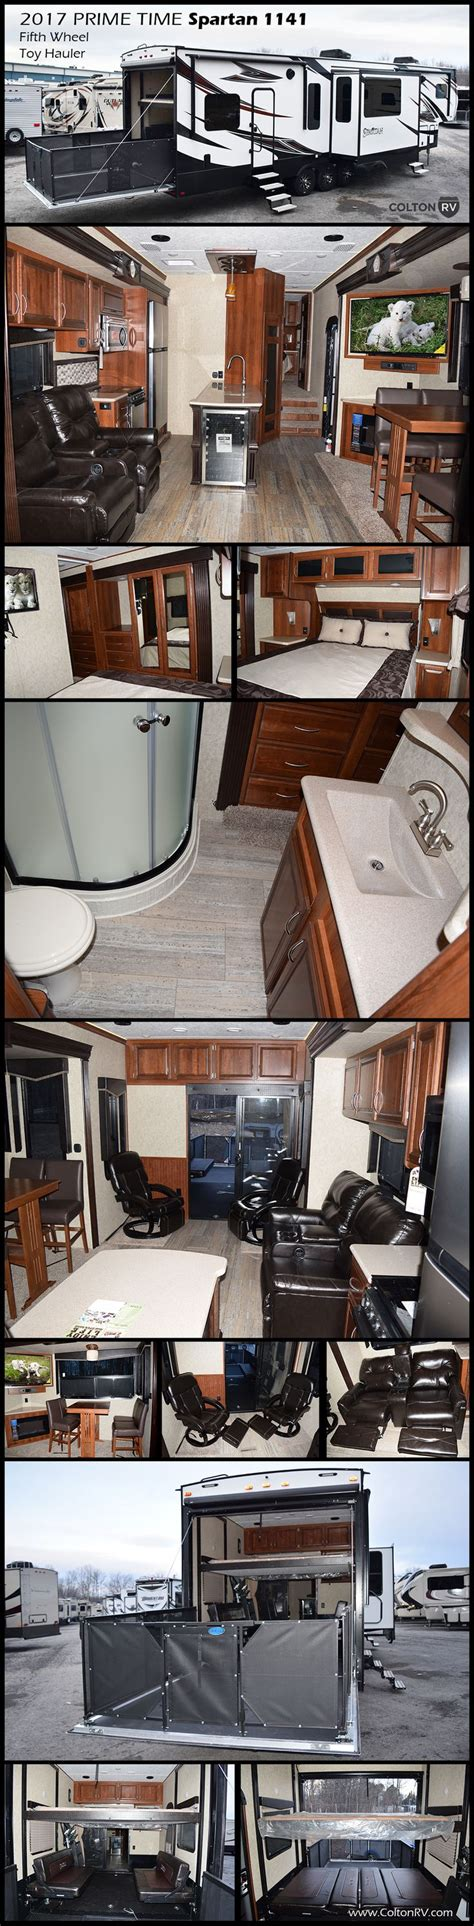 25  best ideas about Fifth Wheel Toy Haulers on Pinterest   5th wheel toy hauler, Toy hauler and